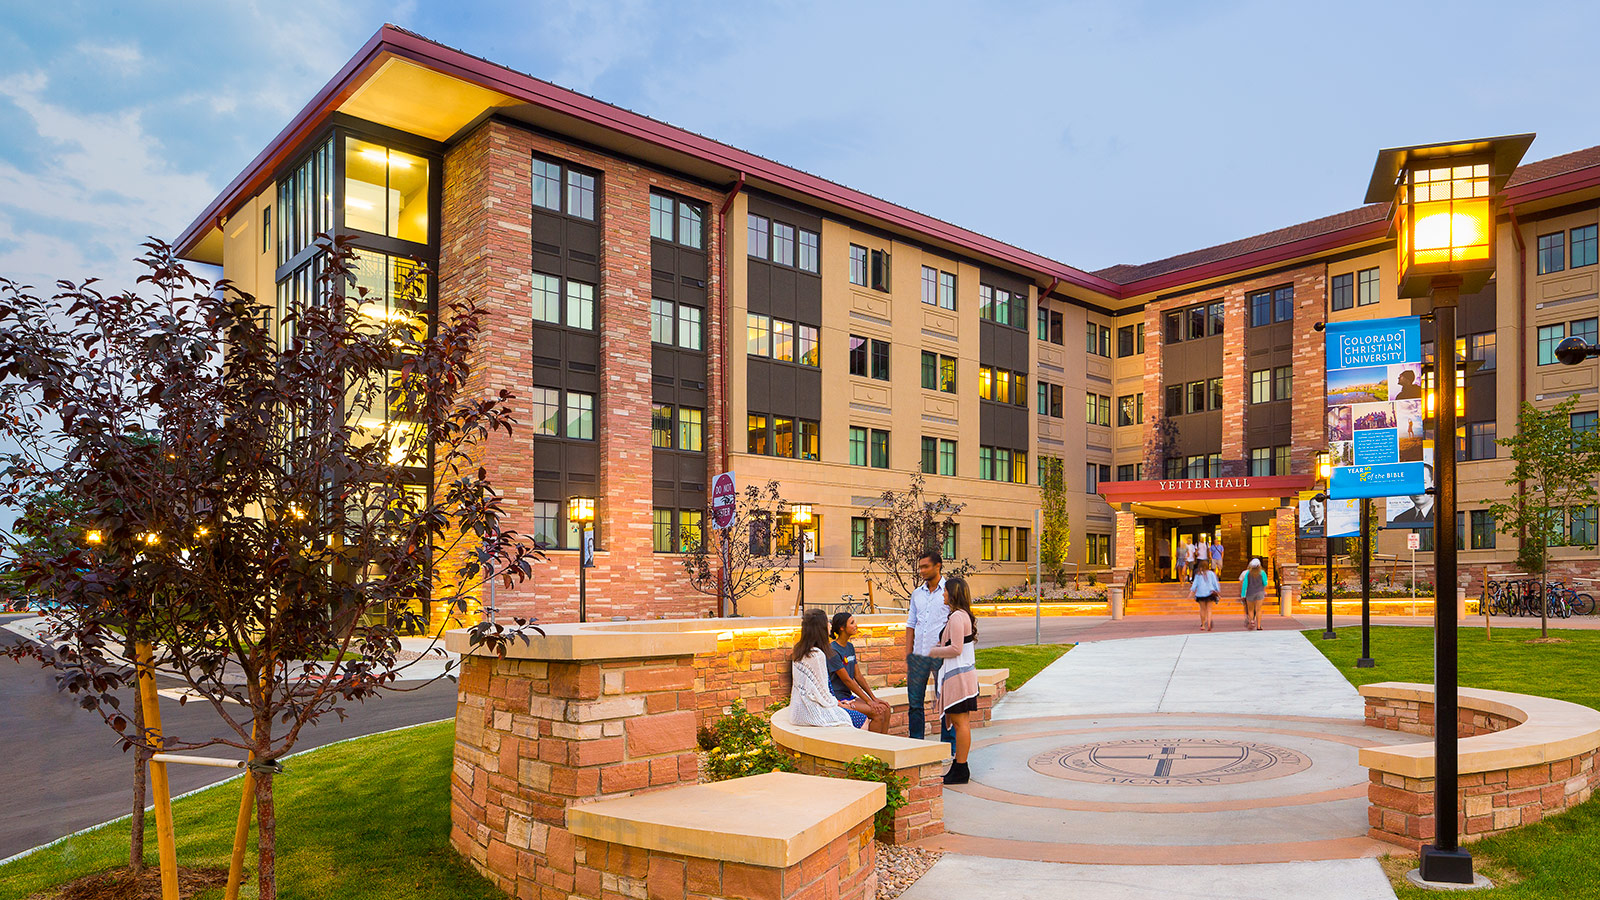 Colorado Christian University Yetter Residence Hall